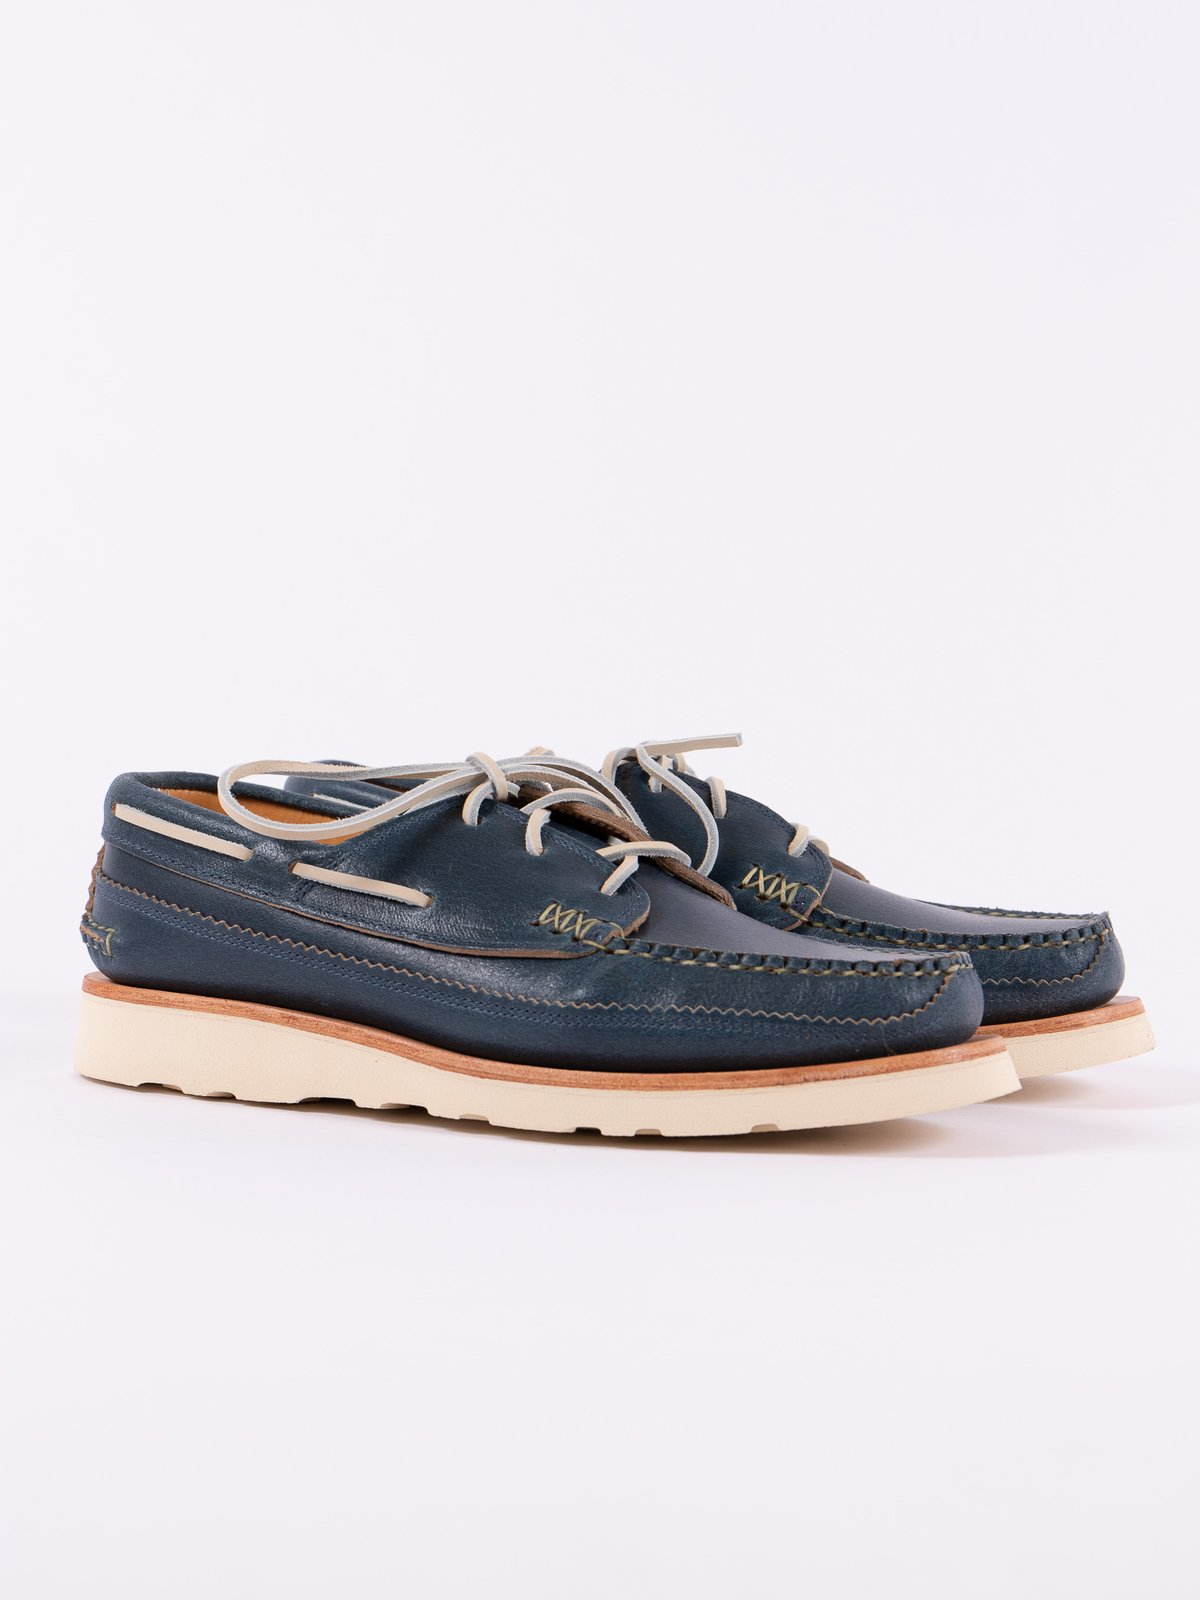 Wax Blue Boat Shoe Exclusive - Image 1